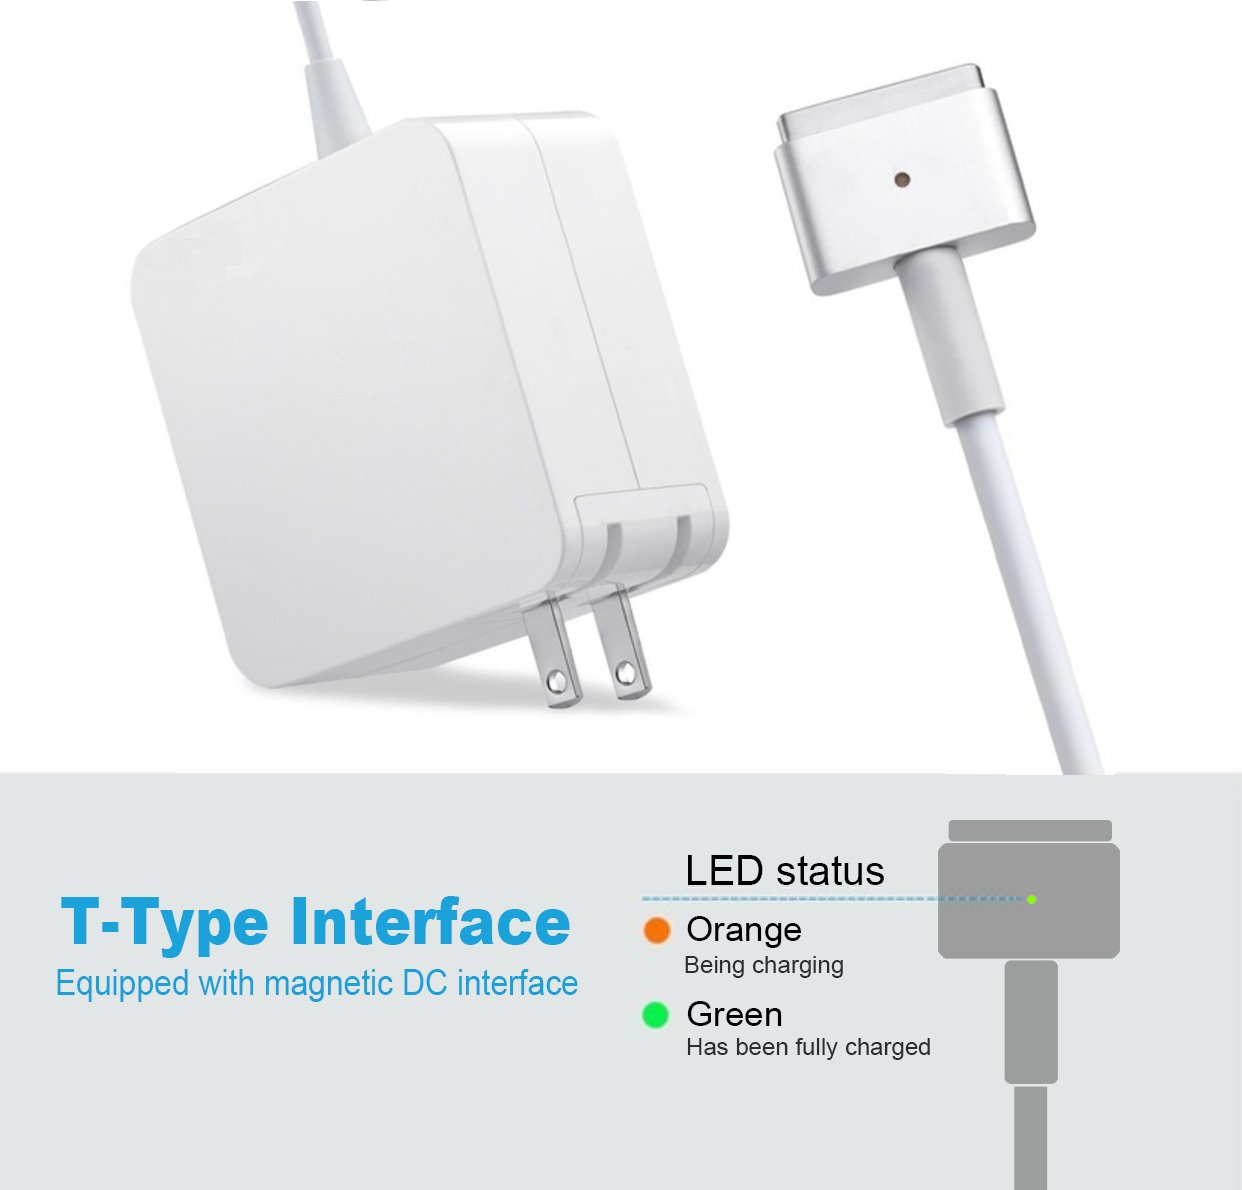 MacBook Pro Charger R60-T,MacBook Air Charger Replacement 60W Magsafe 2 Magnetic T-Tip Power Adapter Charger for Apple MacBook Retina-After Late 2012 by SODYSNAY (Image #2)